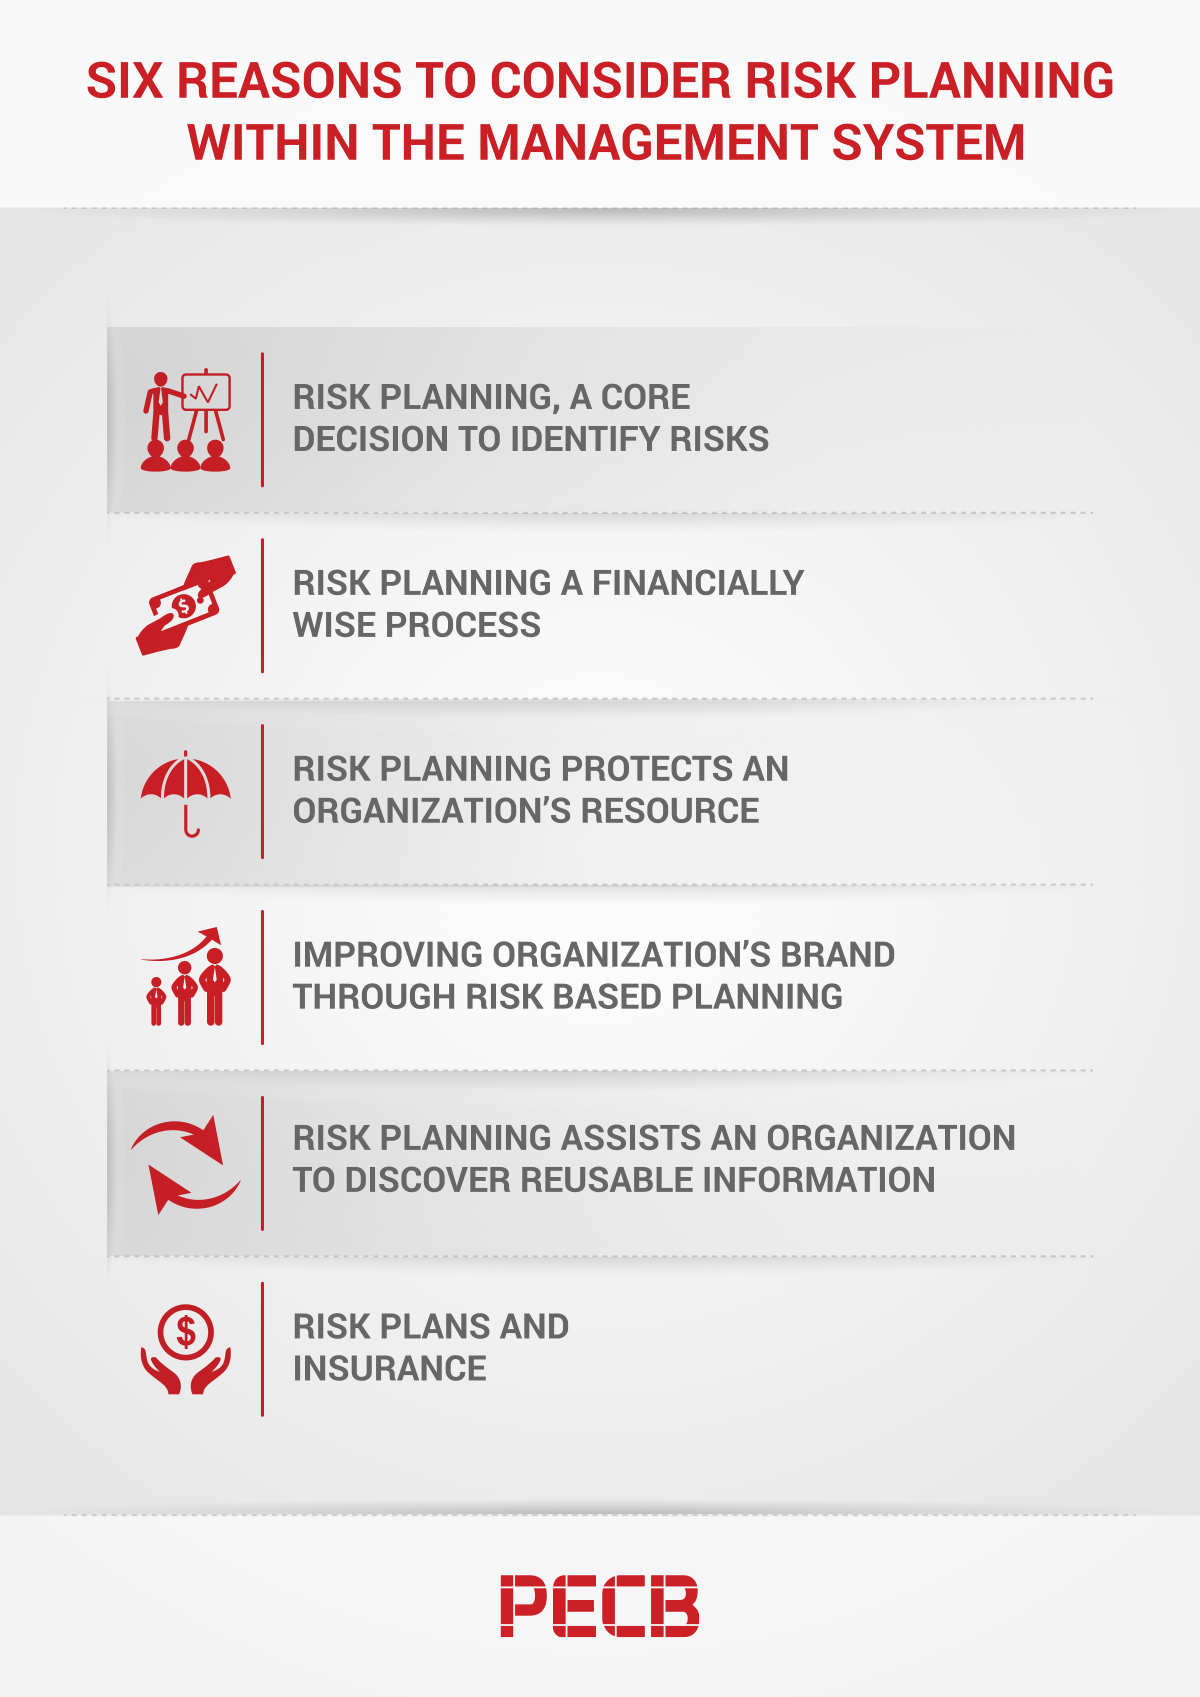 six reasons to consider risk planning within the management system